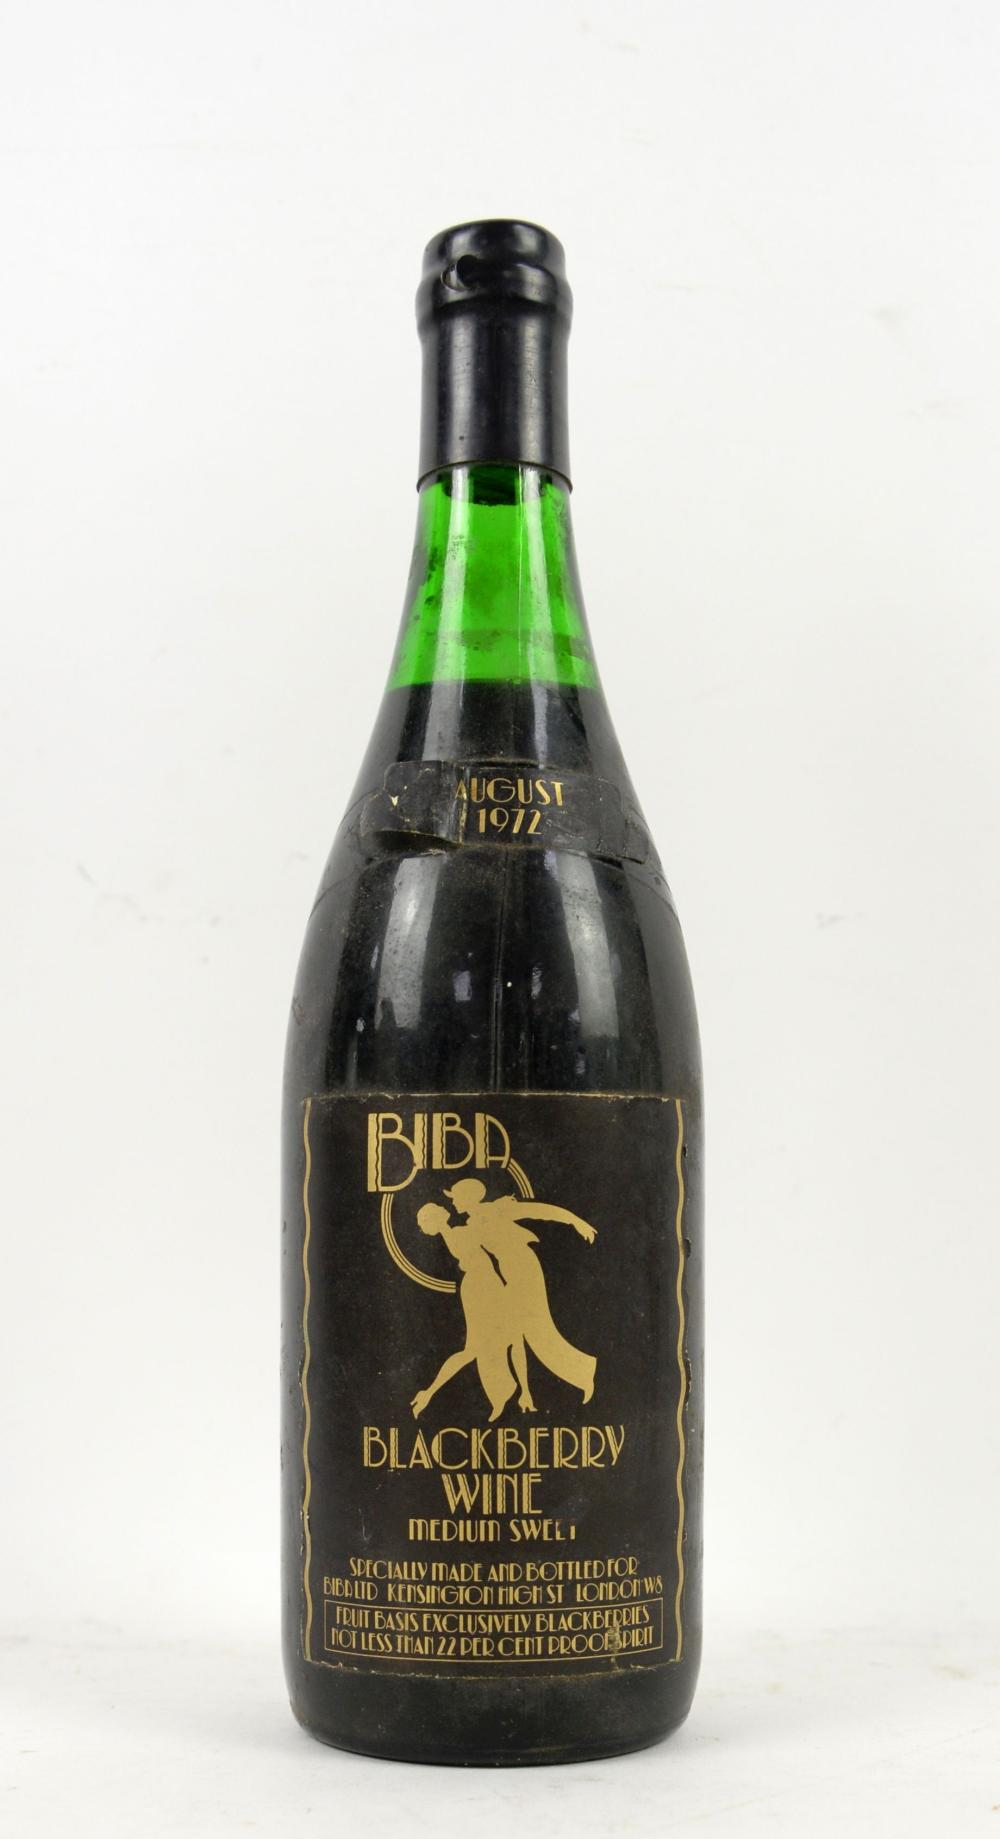 Biba Blackberry wine, 1972, specifically made and